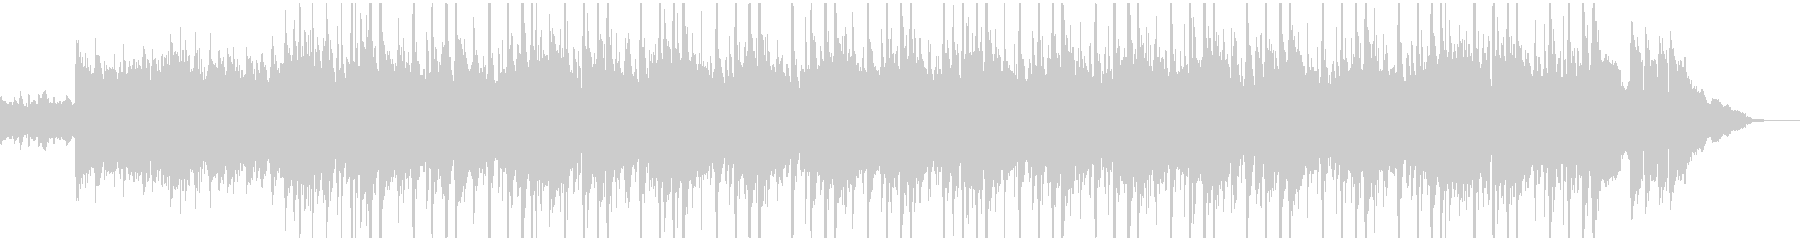 Once the day has ...'s unreproduced waveform